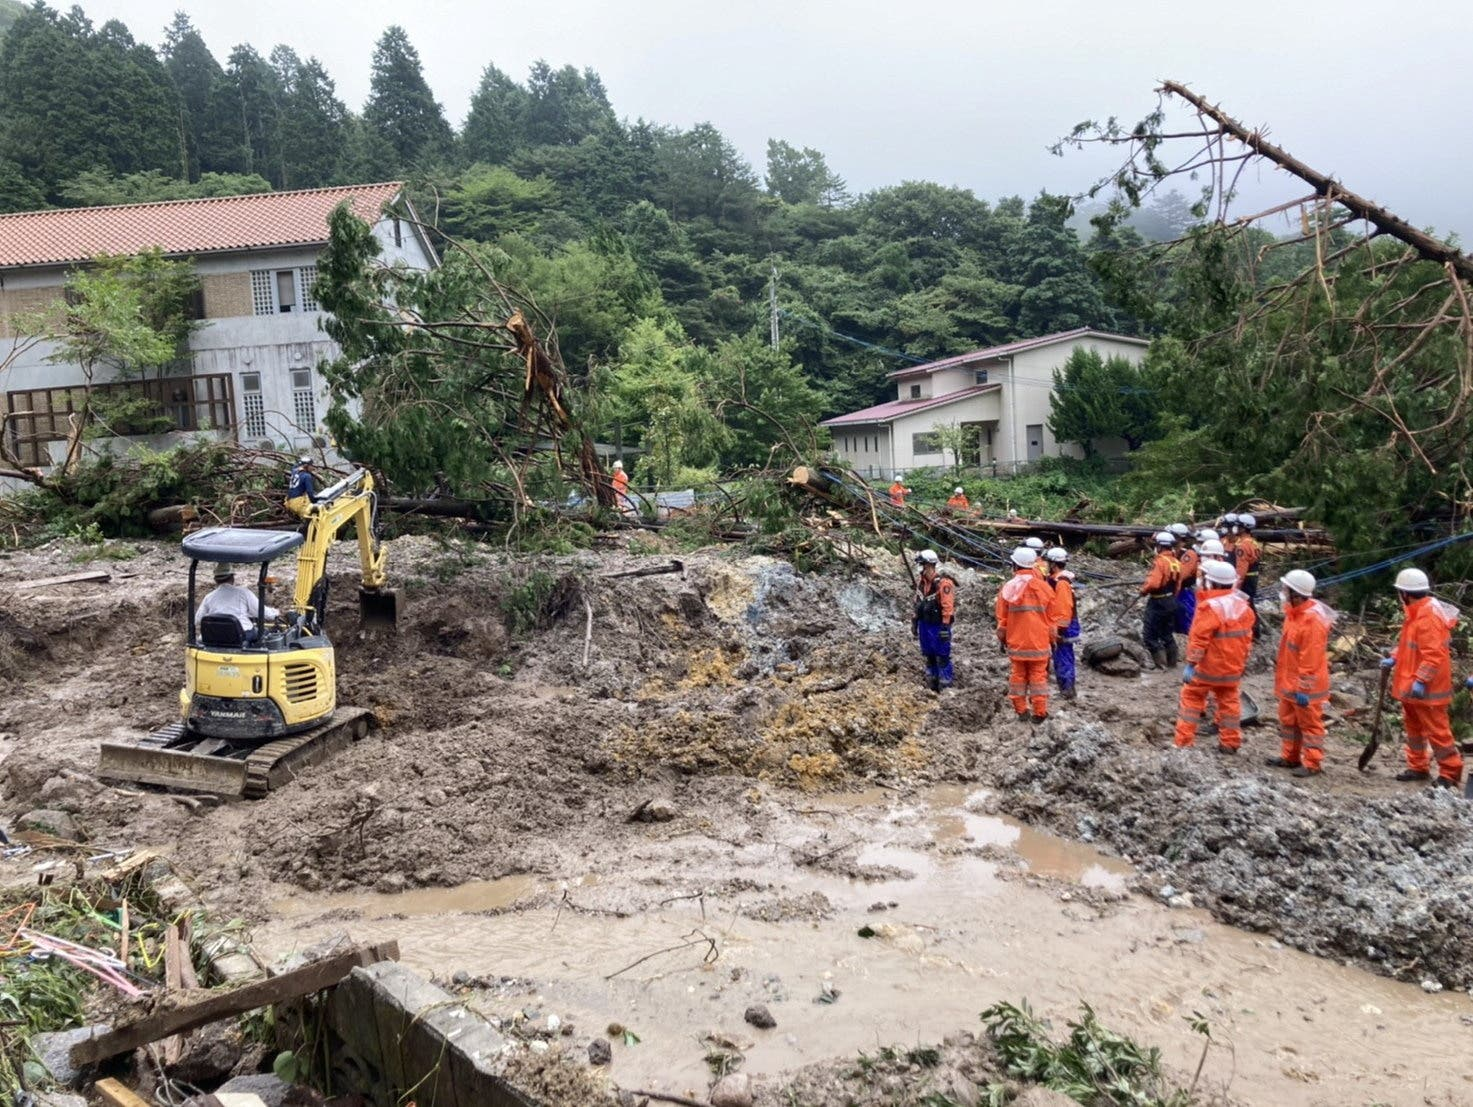 Rescue workers search for missing people at a landslide site caused by heavy rainfall in Unzen, Nagasaki Prefecture, southwestern Japan, in this handout image taken and released by Unzen City August 15, 2021. (Reuters)